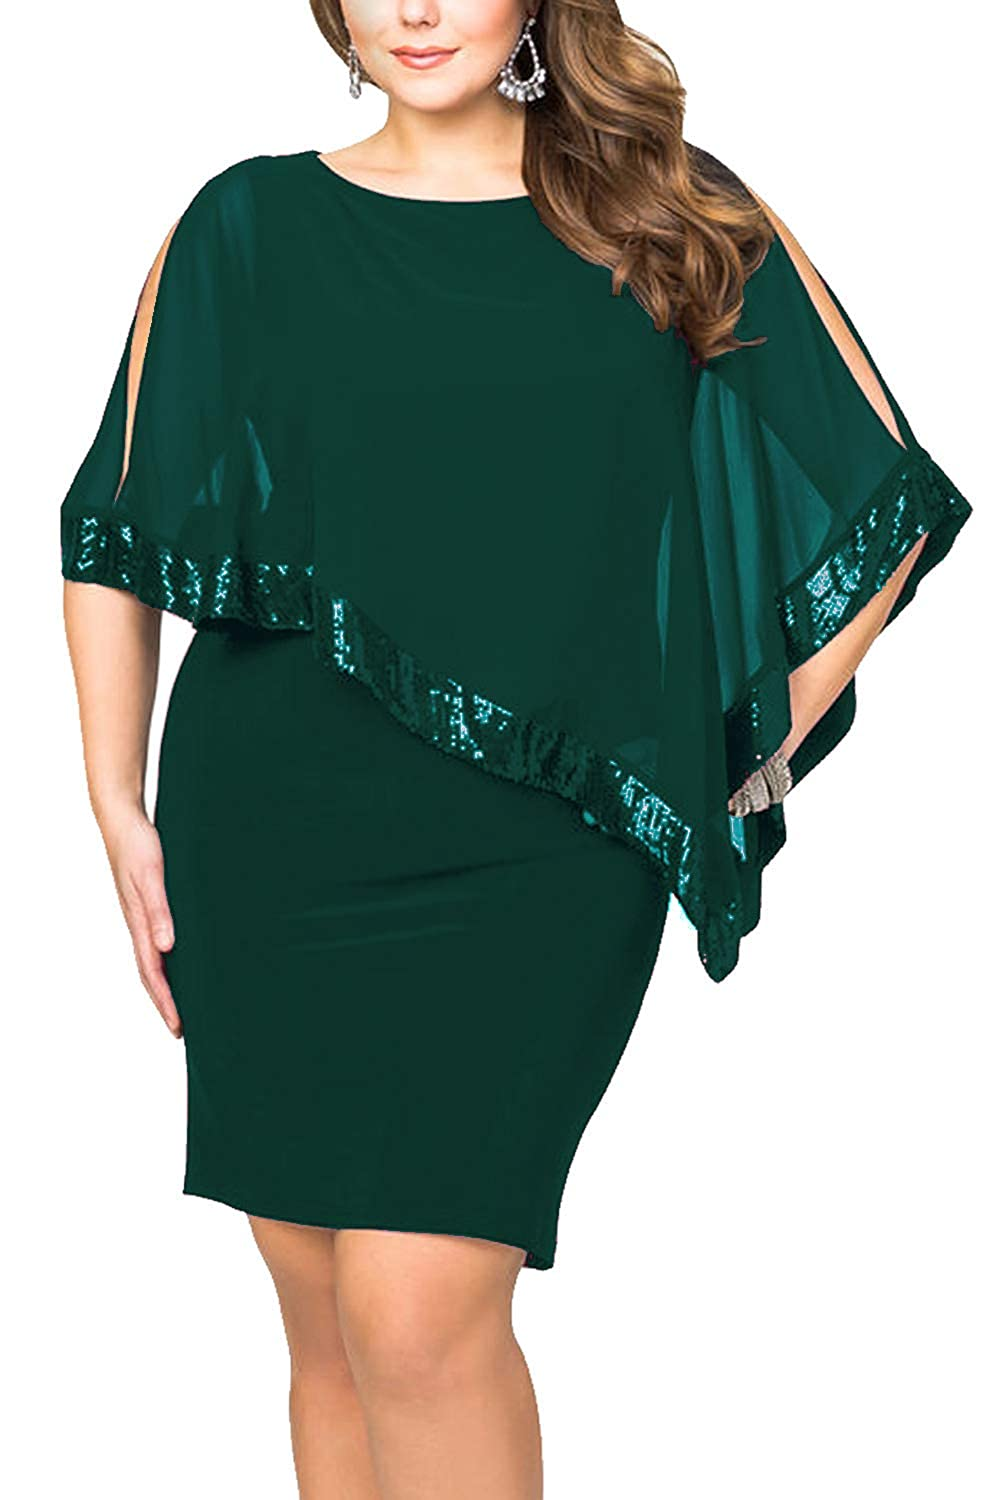 Alaster Queen Sequined Overlay Party Dress Chiffon Poncho Slit Sleeve Pencil Cocktail Mini Dress